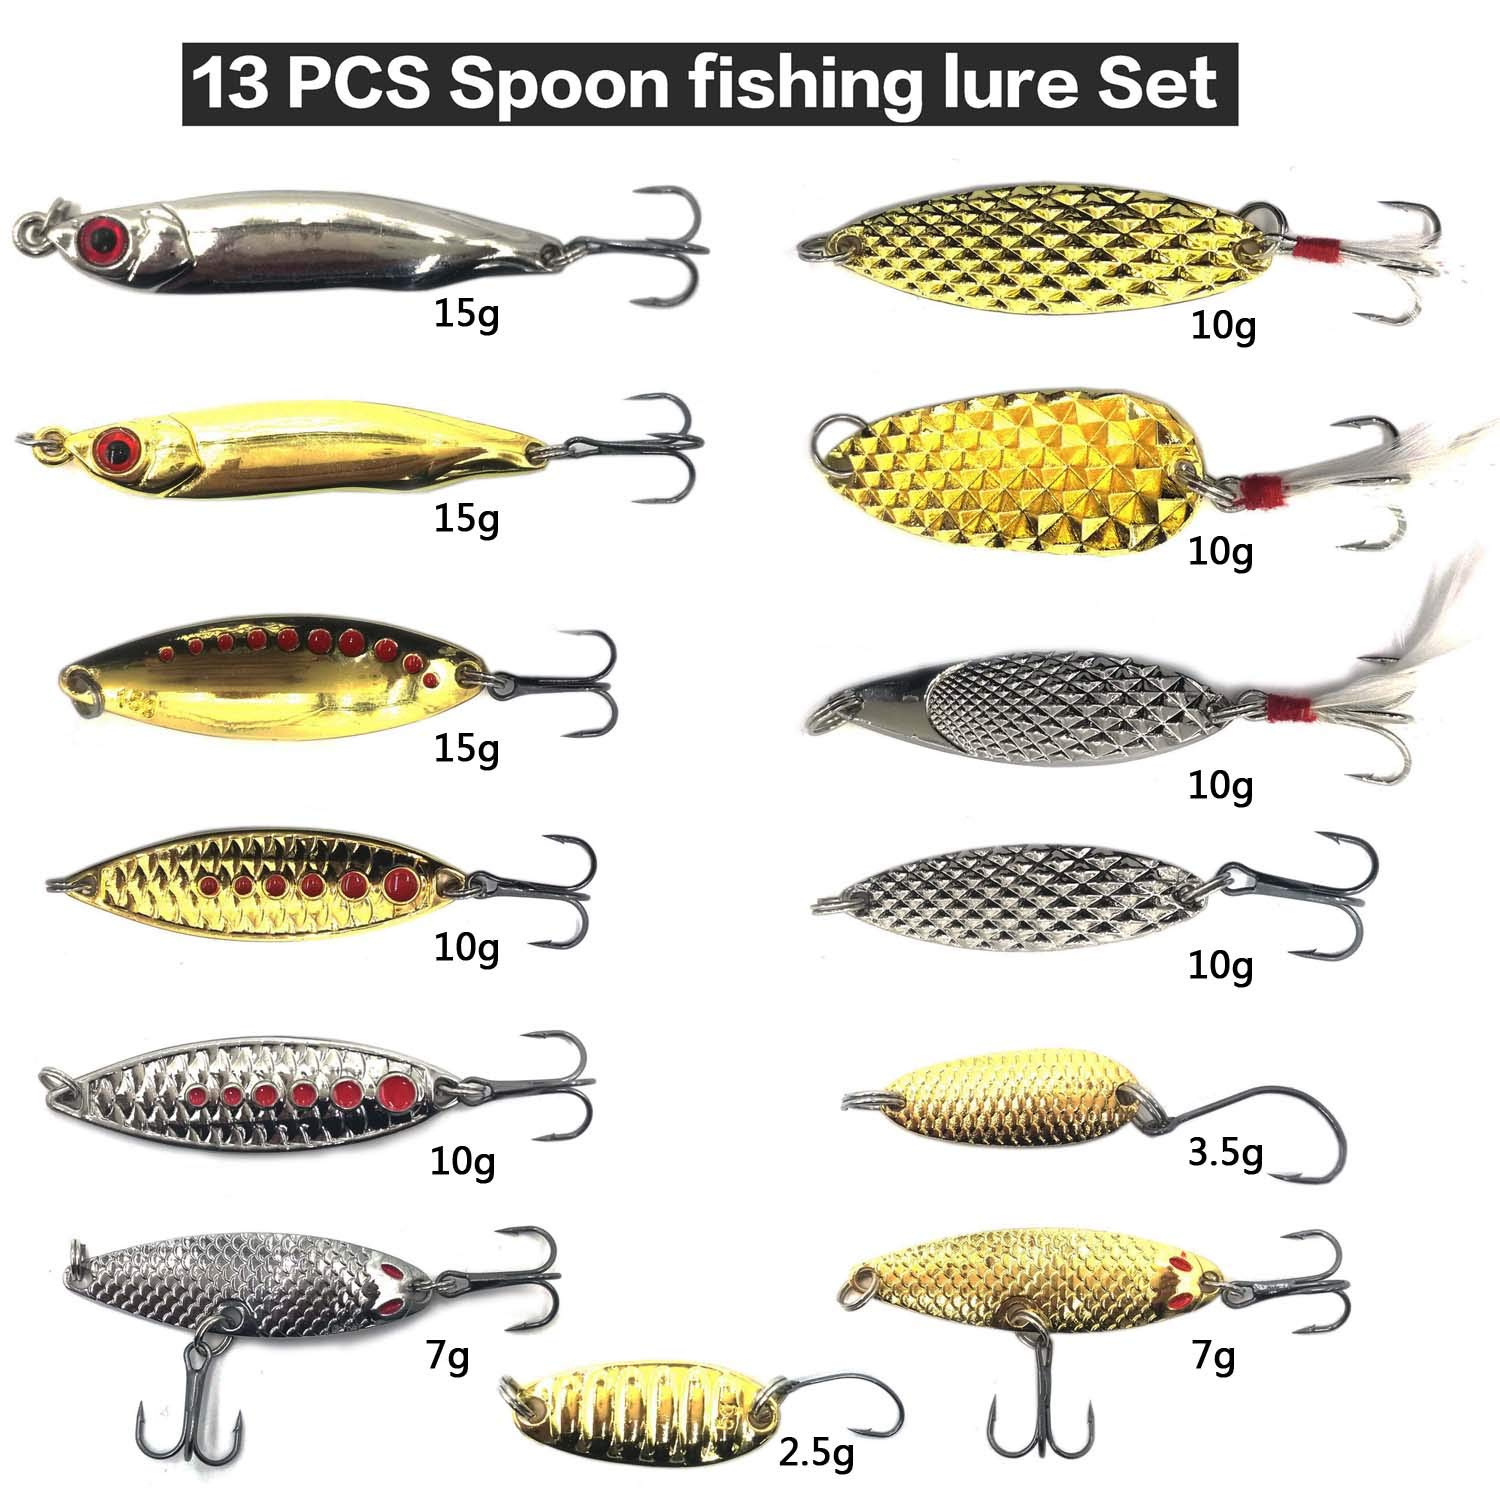 Hard Fishing Lure Set 43pcs Assorted Bass Soft Fishing Lure Kit Colorful Minnow Popper Crank Rattlin VIB Jointed Fishing Lure Set Hard Crankbait Tackle Pack For Saltwater or Freshwater (Spoon-30) by XBLACK (Image #1)